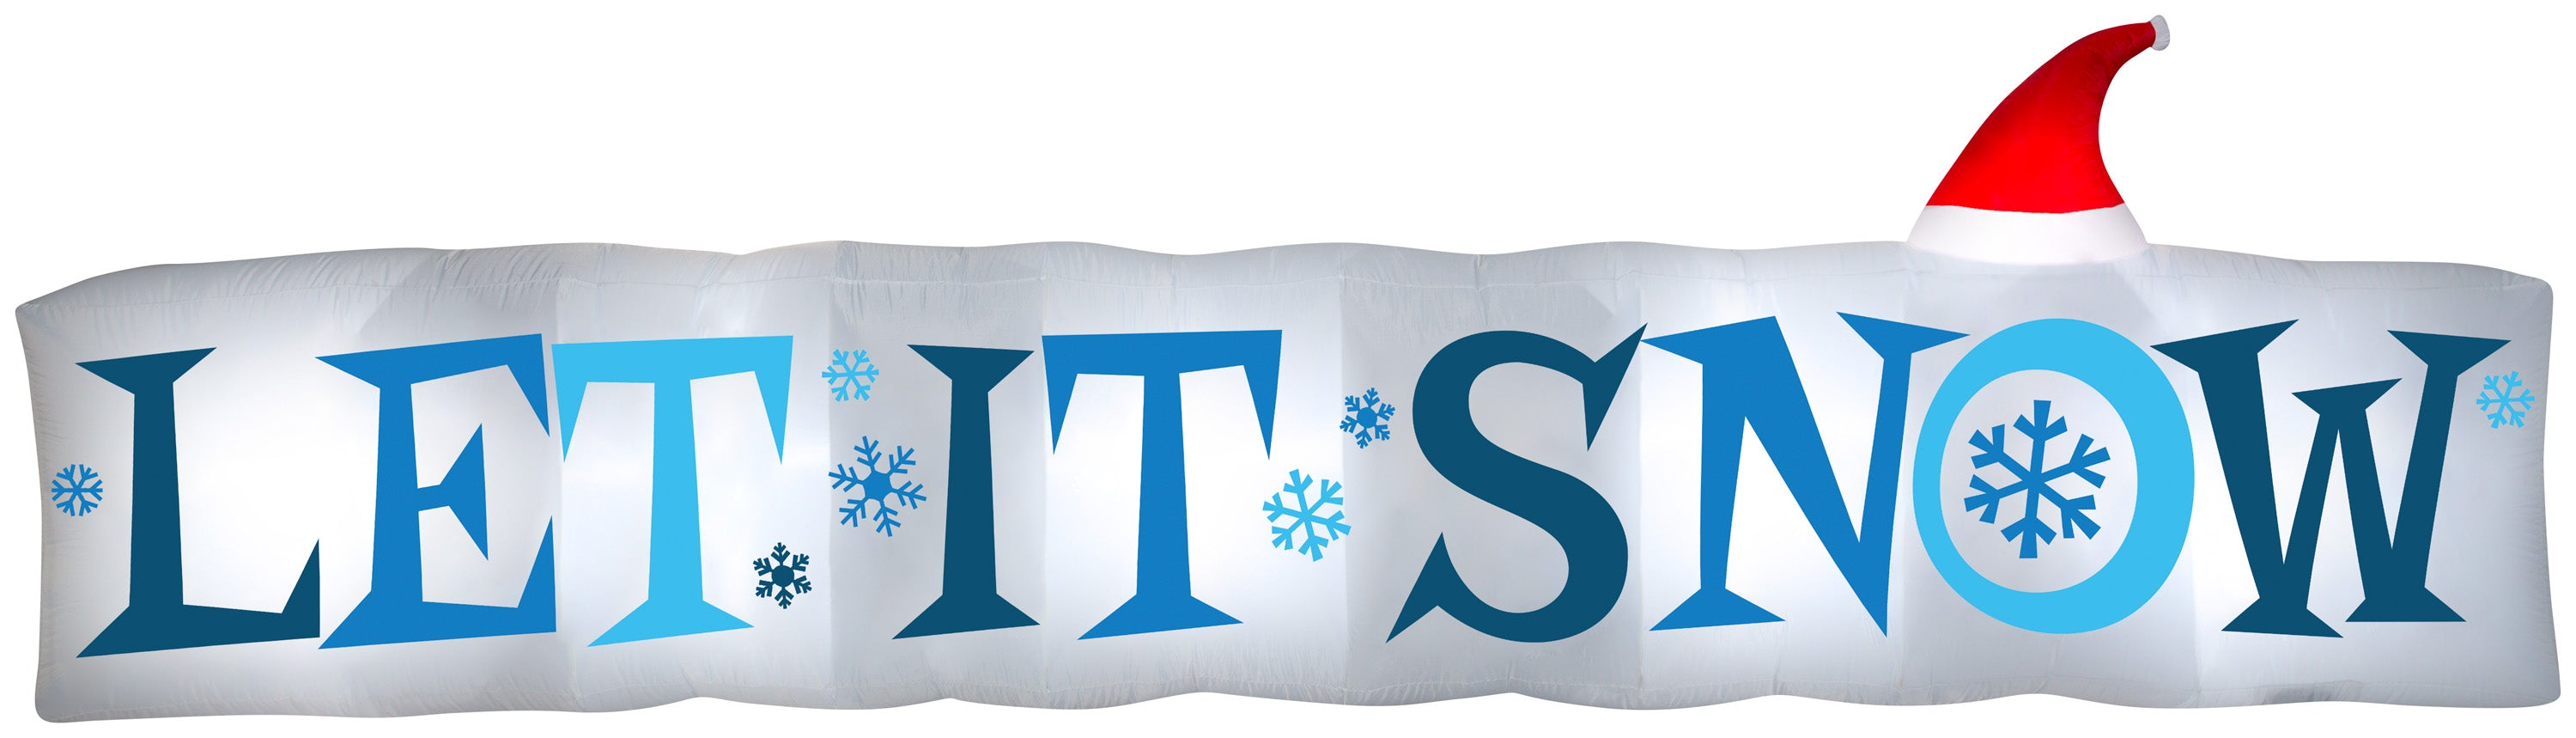 Gemmy 15' Airblown Inflatable Let It Snow Sign LG